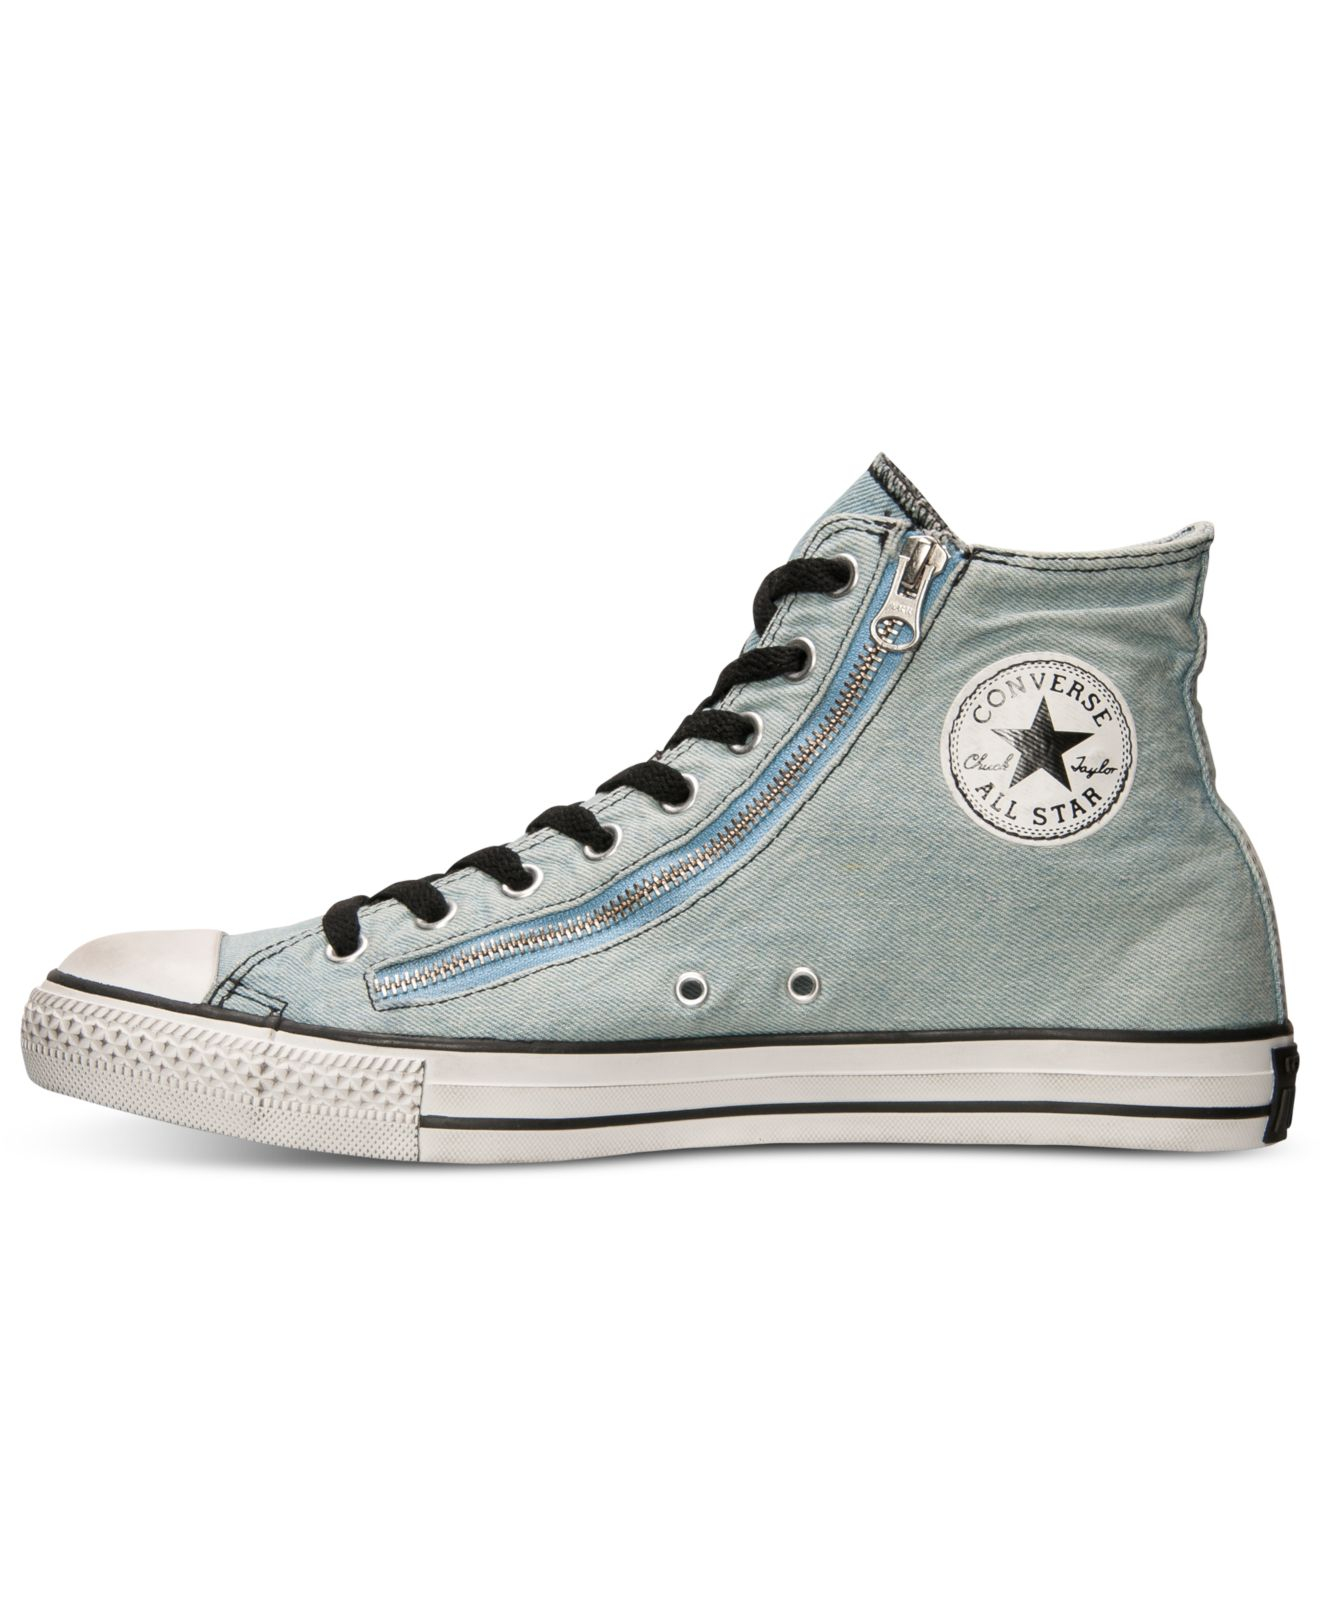 688c821642b6 Lyst - Converse Men S Chuck Taylor All Star Double Zip Casual ...